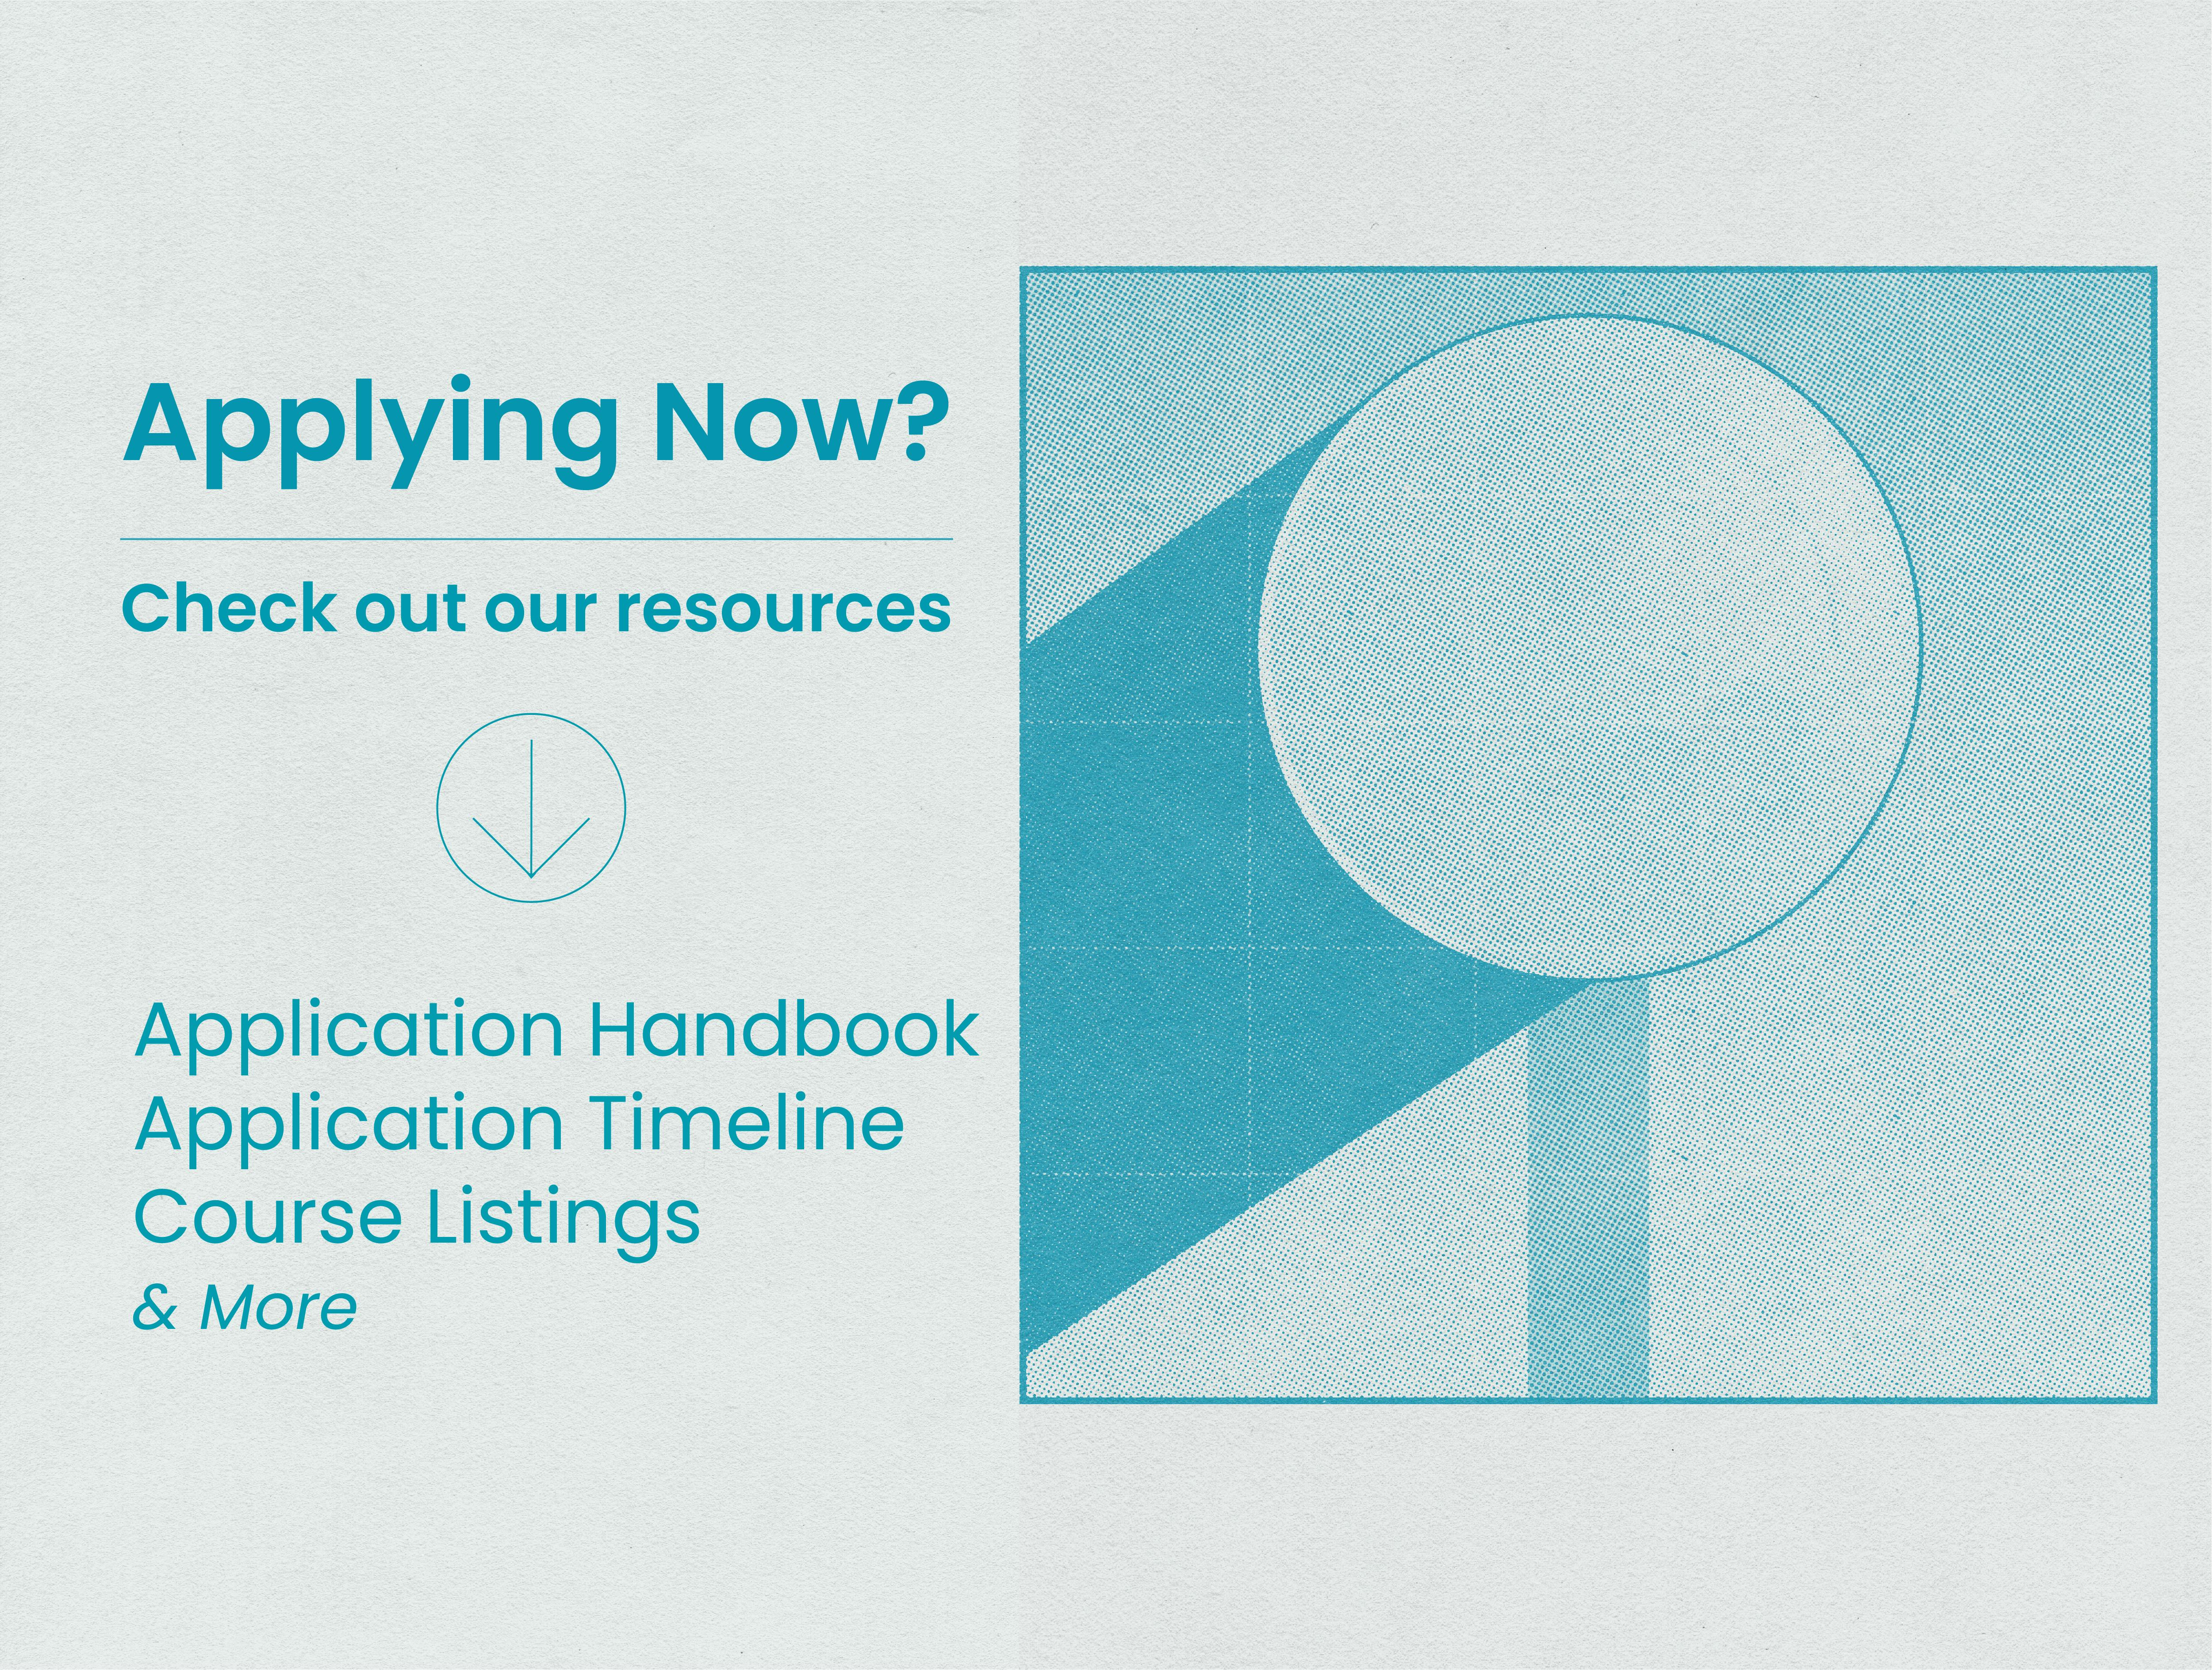 Applying Now? Check out our resources.